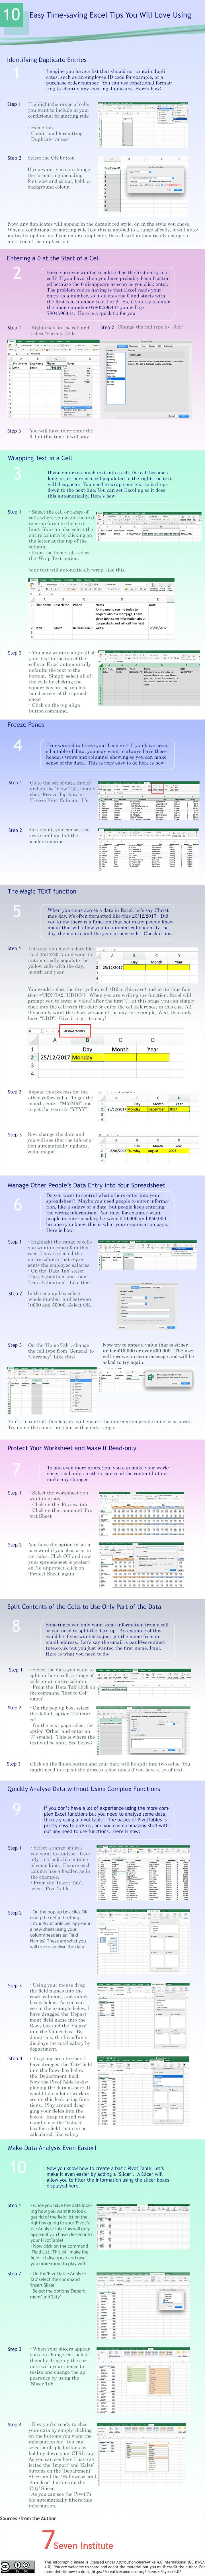 10 Easy Time Saving Excel Tips You Will Love Using | Seven Institute